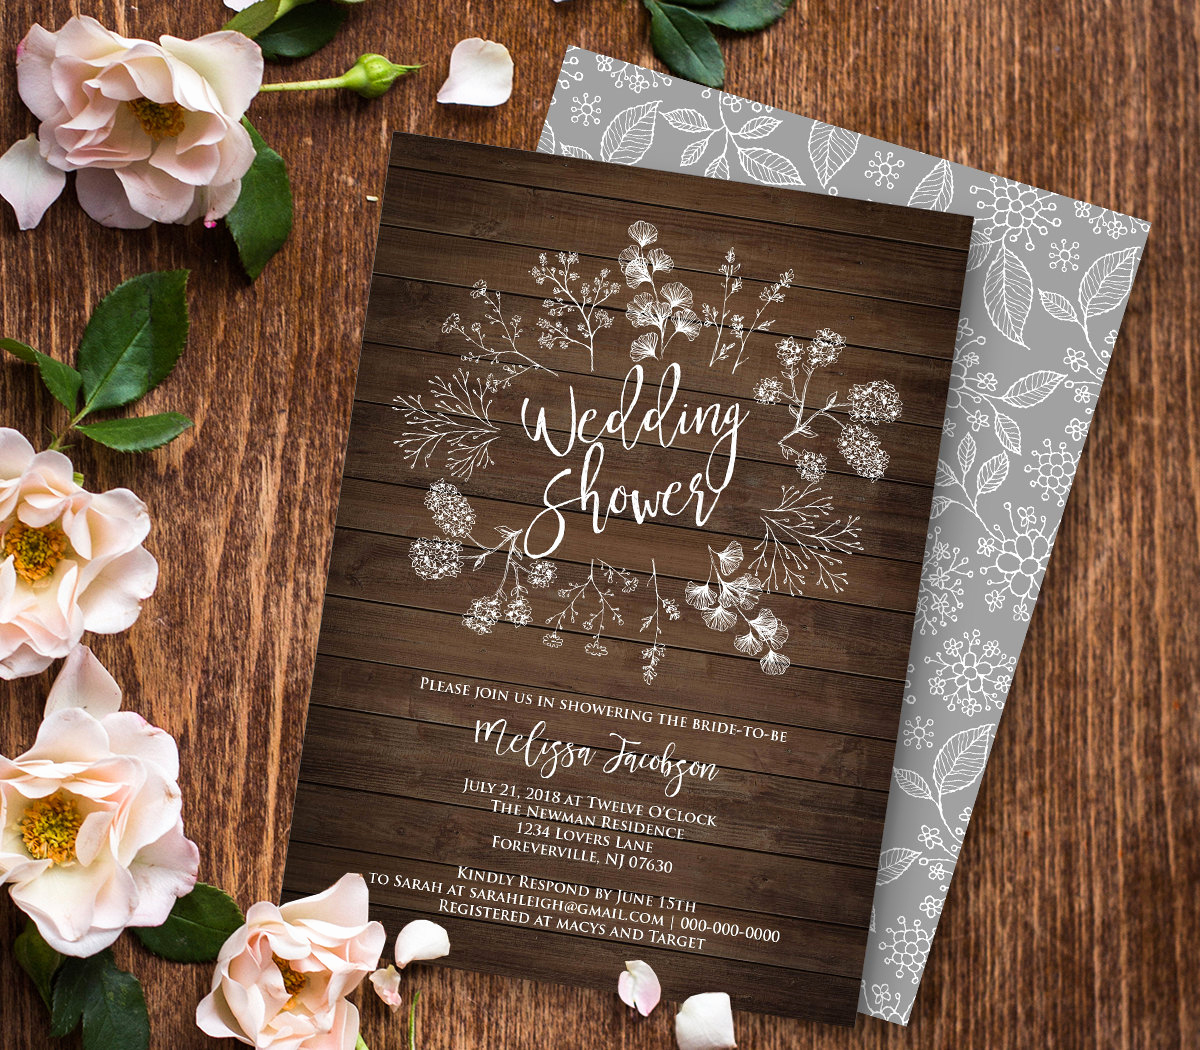 Bridal Shower Invitation Template Best Of Wedding Shower Invitation Template Couples Shower Printable